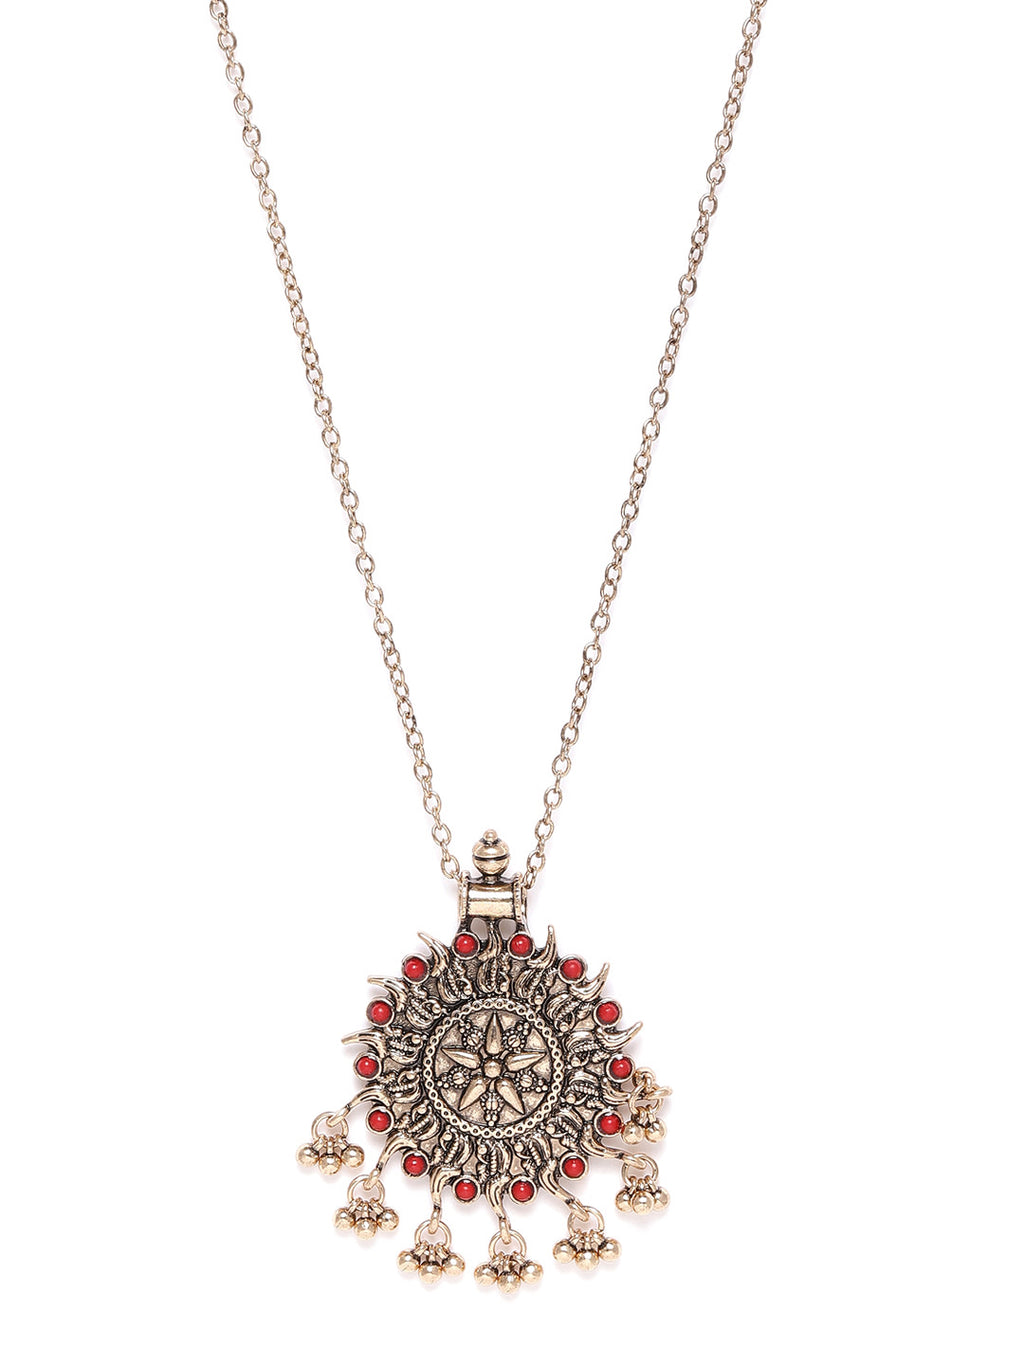 GOLD-TONED & RED ANTIQUE NECKLACE